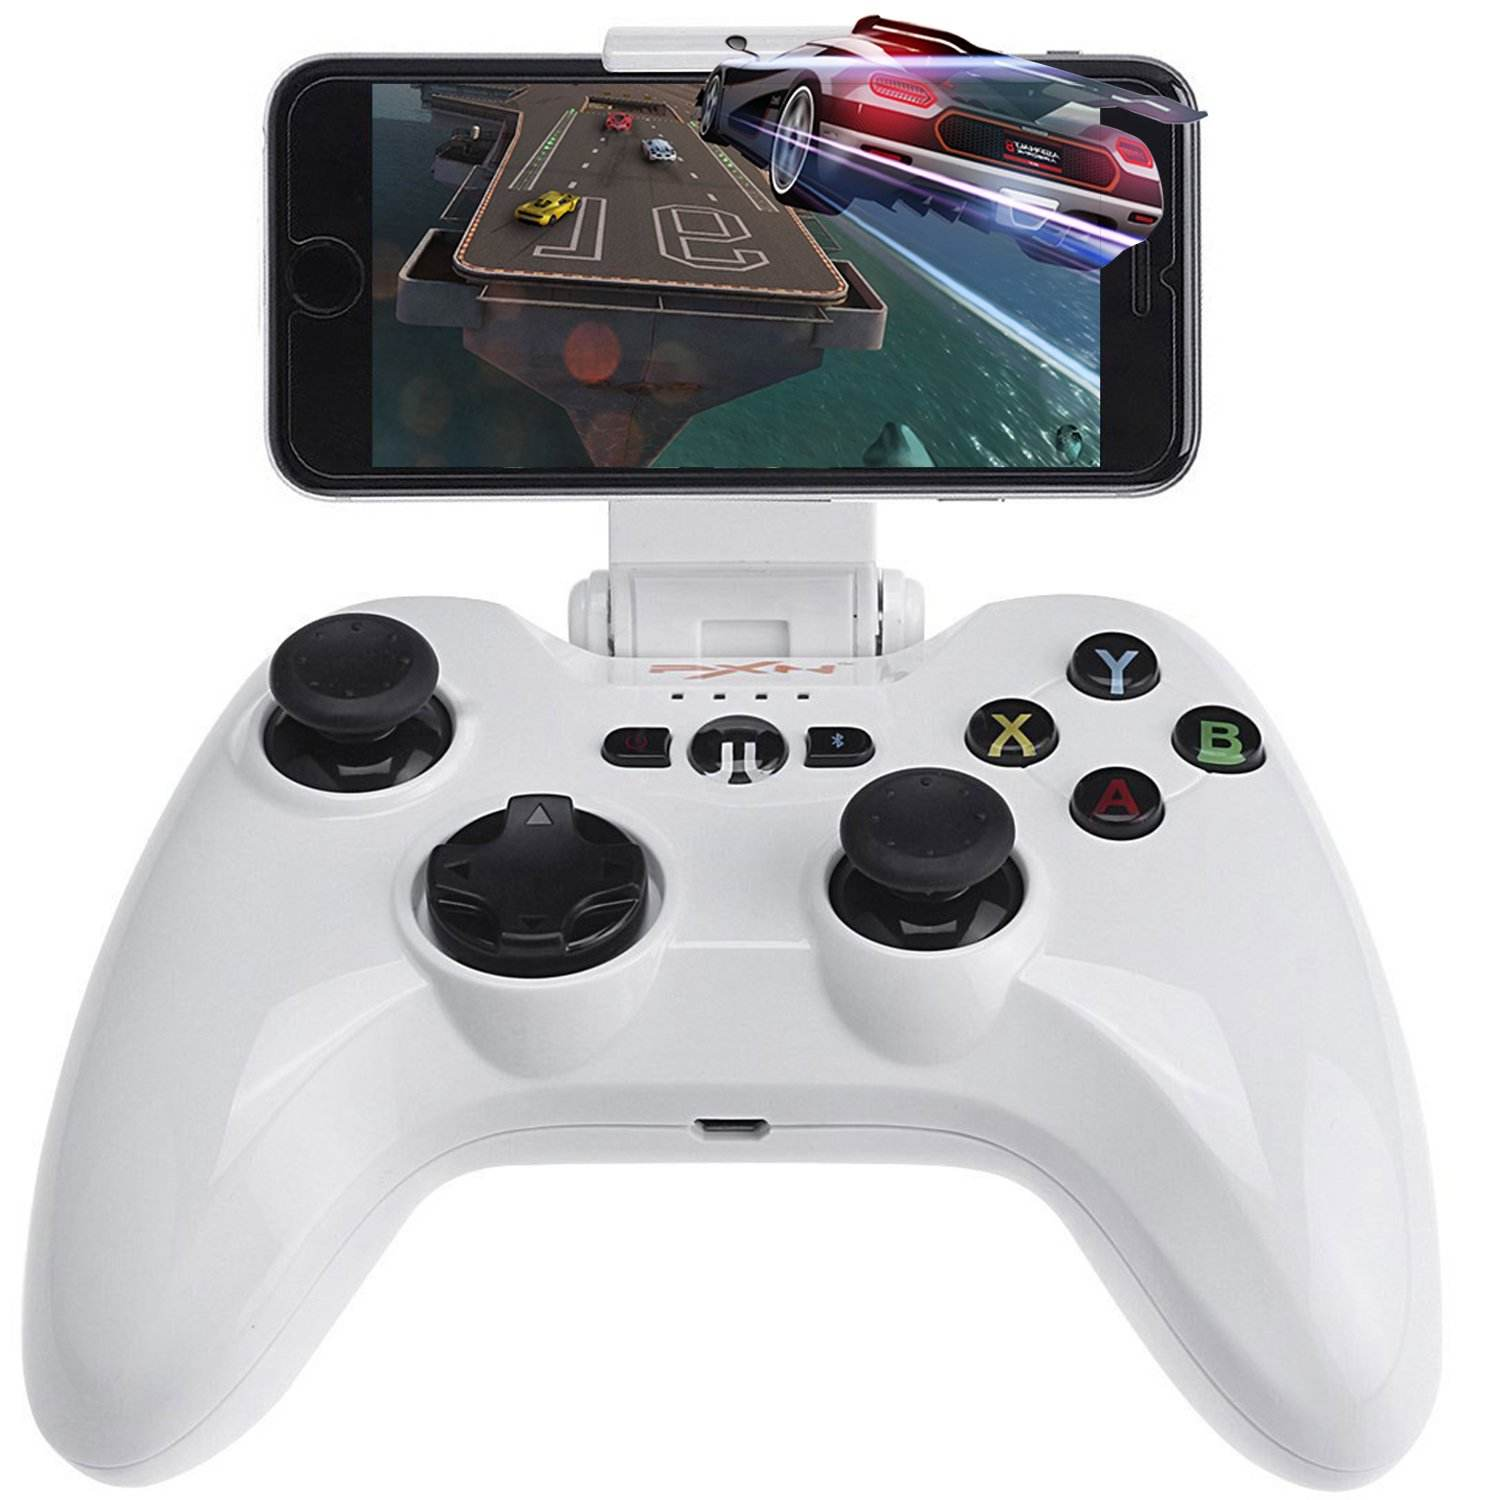 PXN-6603W Apple Sertifikalı MFI Cep Gamepad, Bluetooth Oyun Denetleyicisi Apple TV, iPhone ve iPad